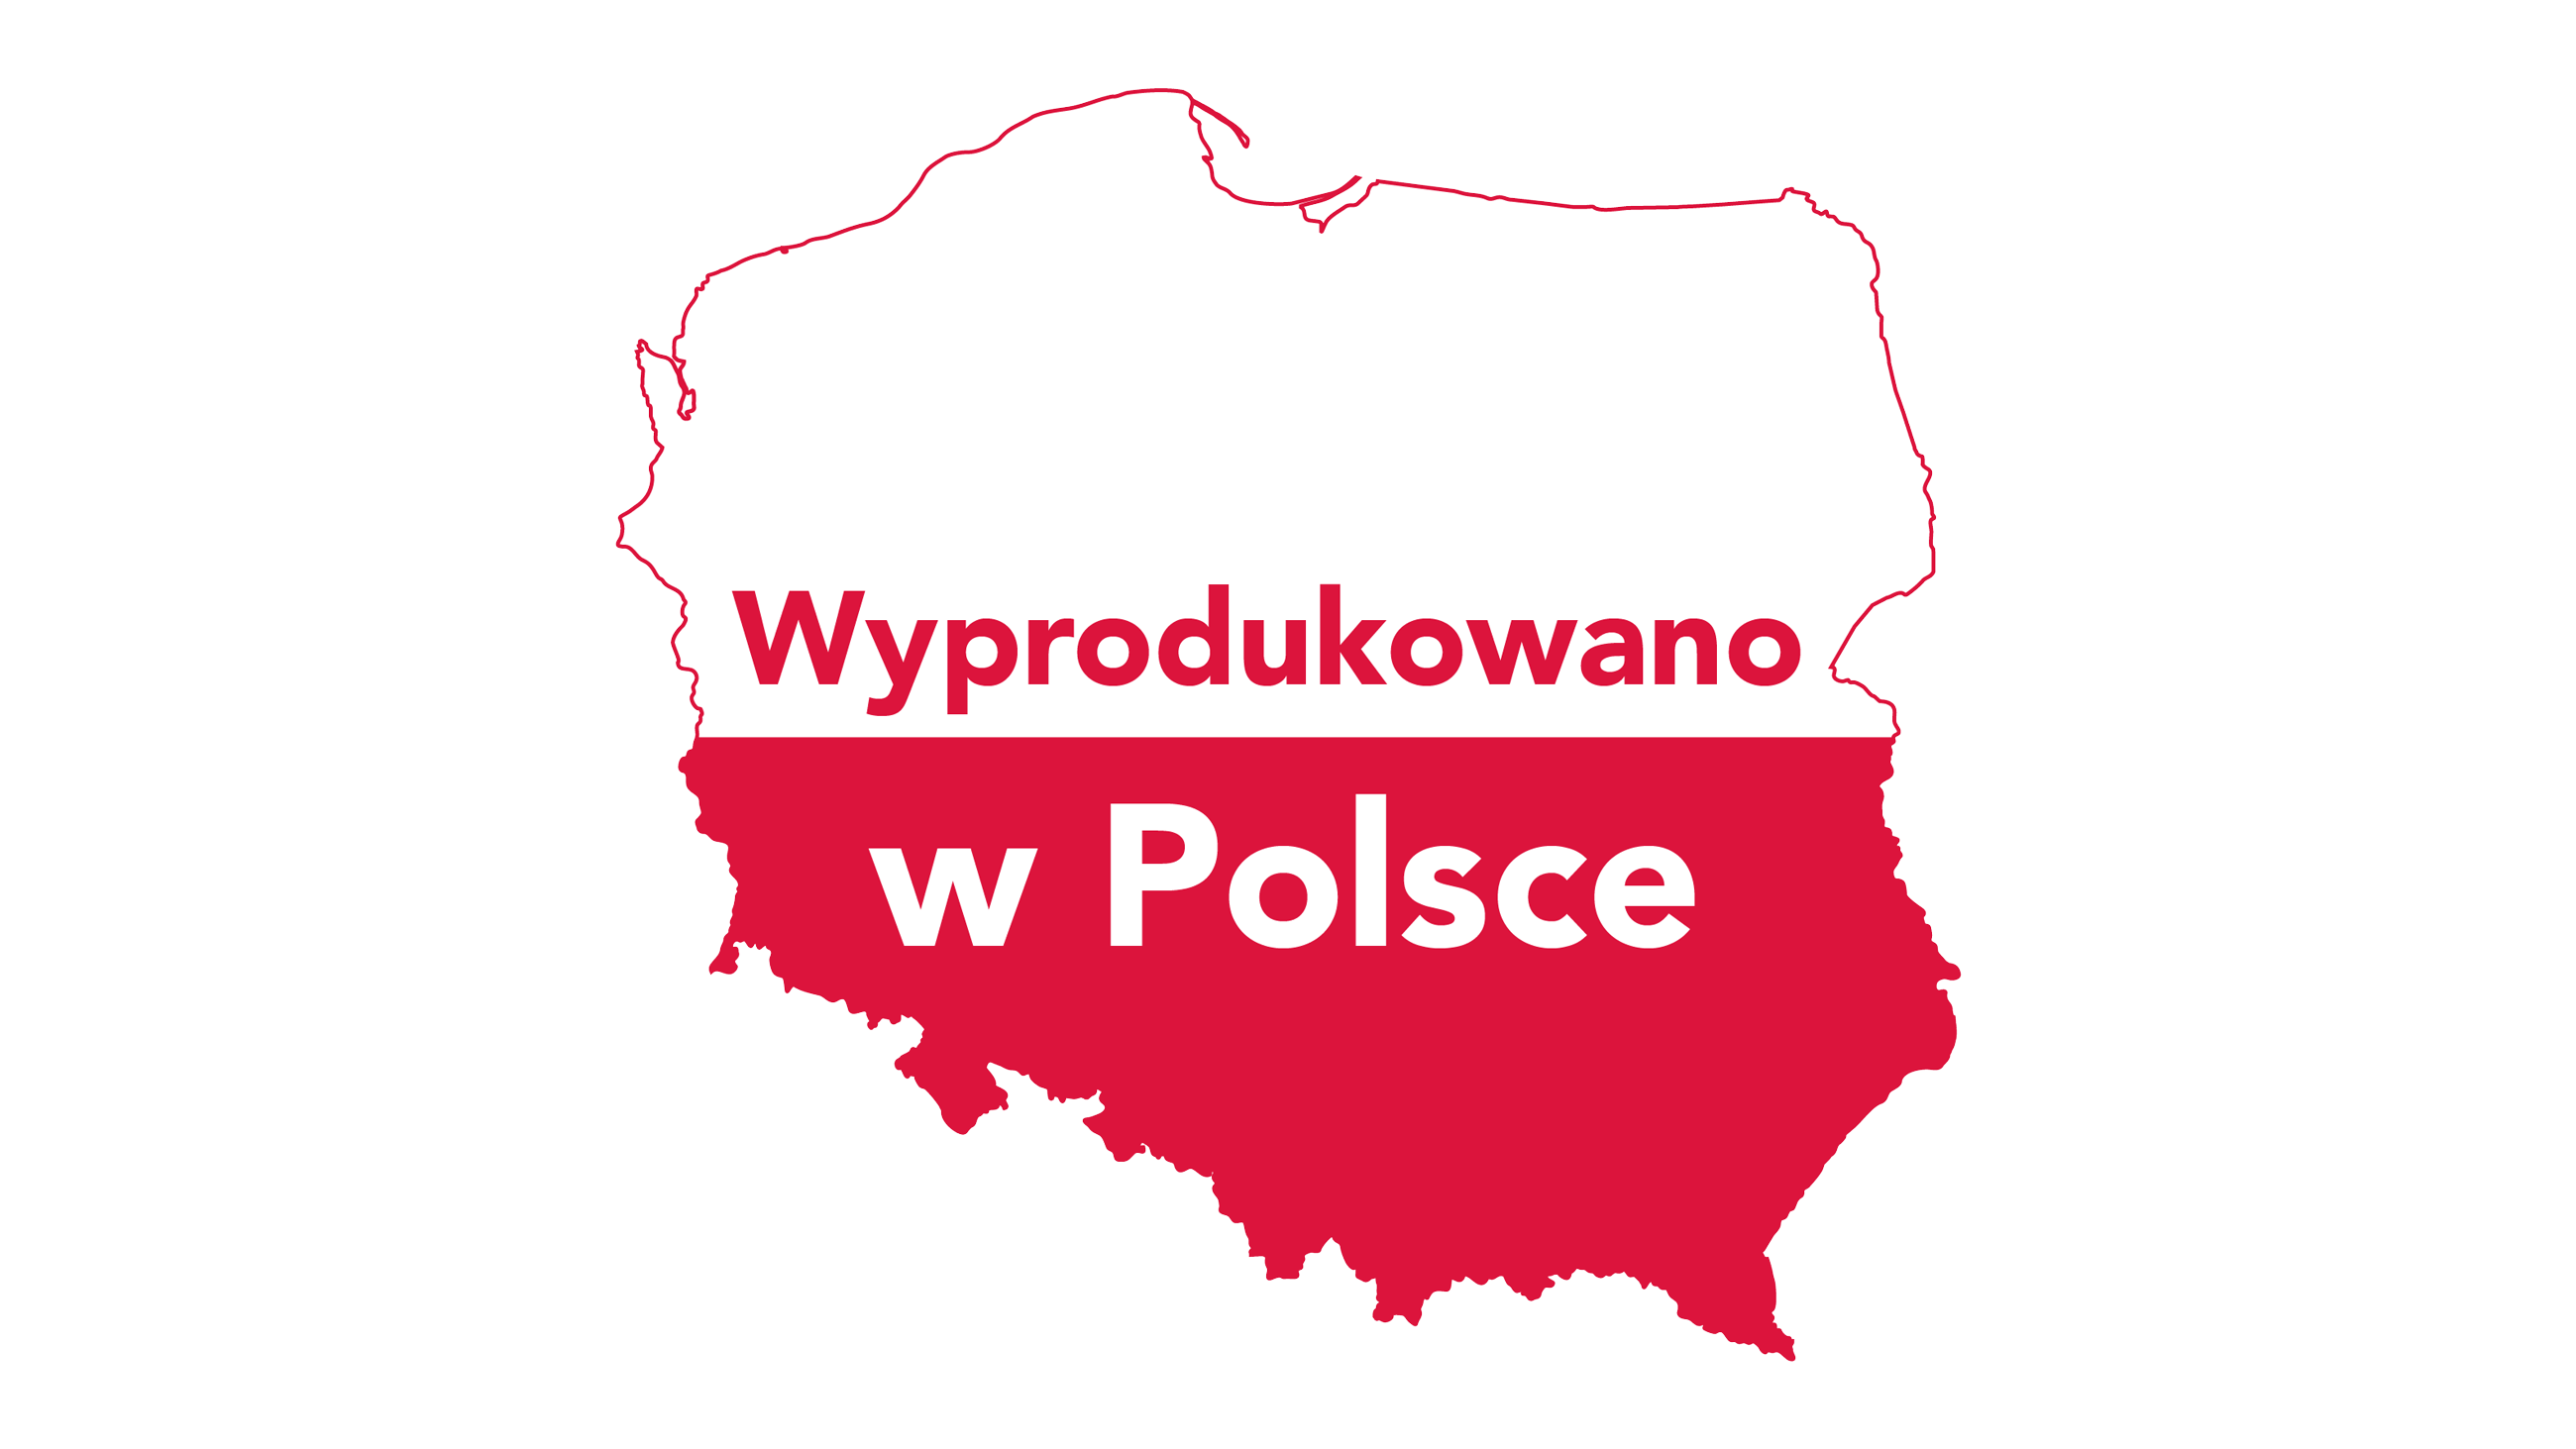 Made in Poland, produced in poland, PL, map